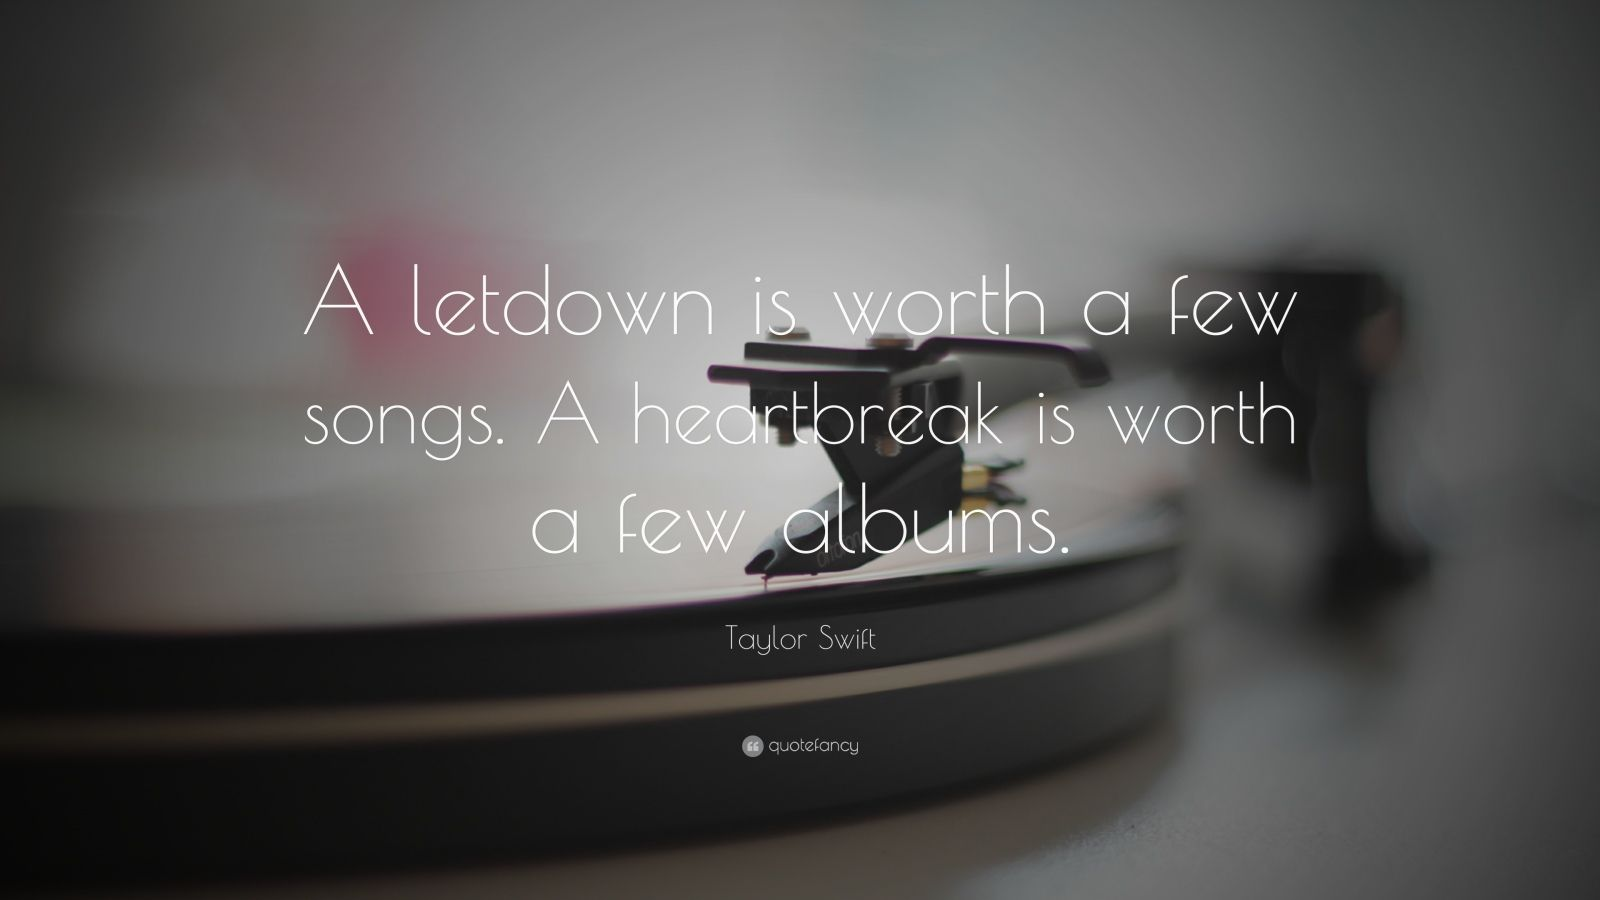 """Taylor Swift Quote: """"A letdown is worth a few songs. A heartbreak is worth a few albums."""""""